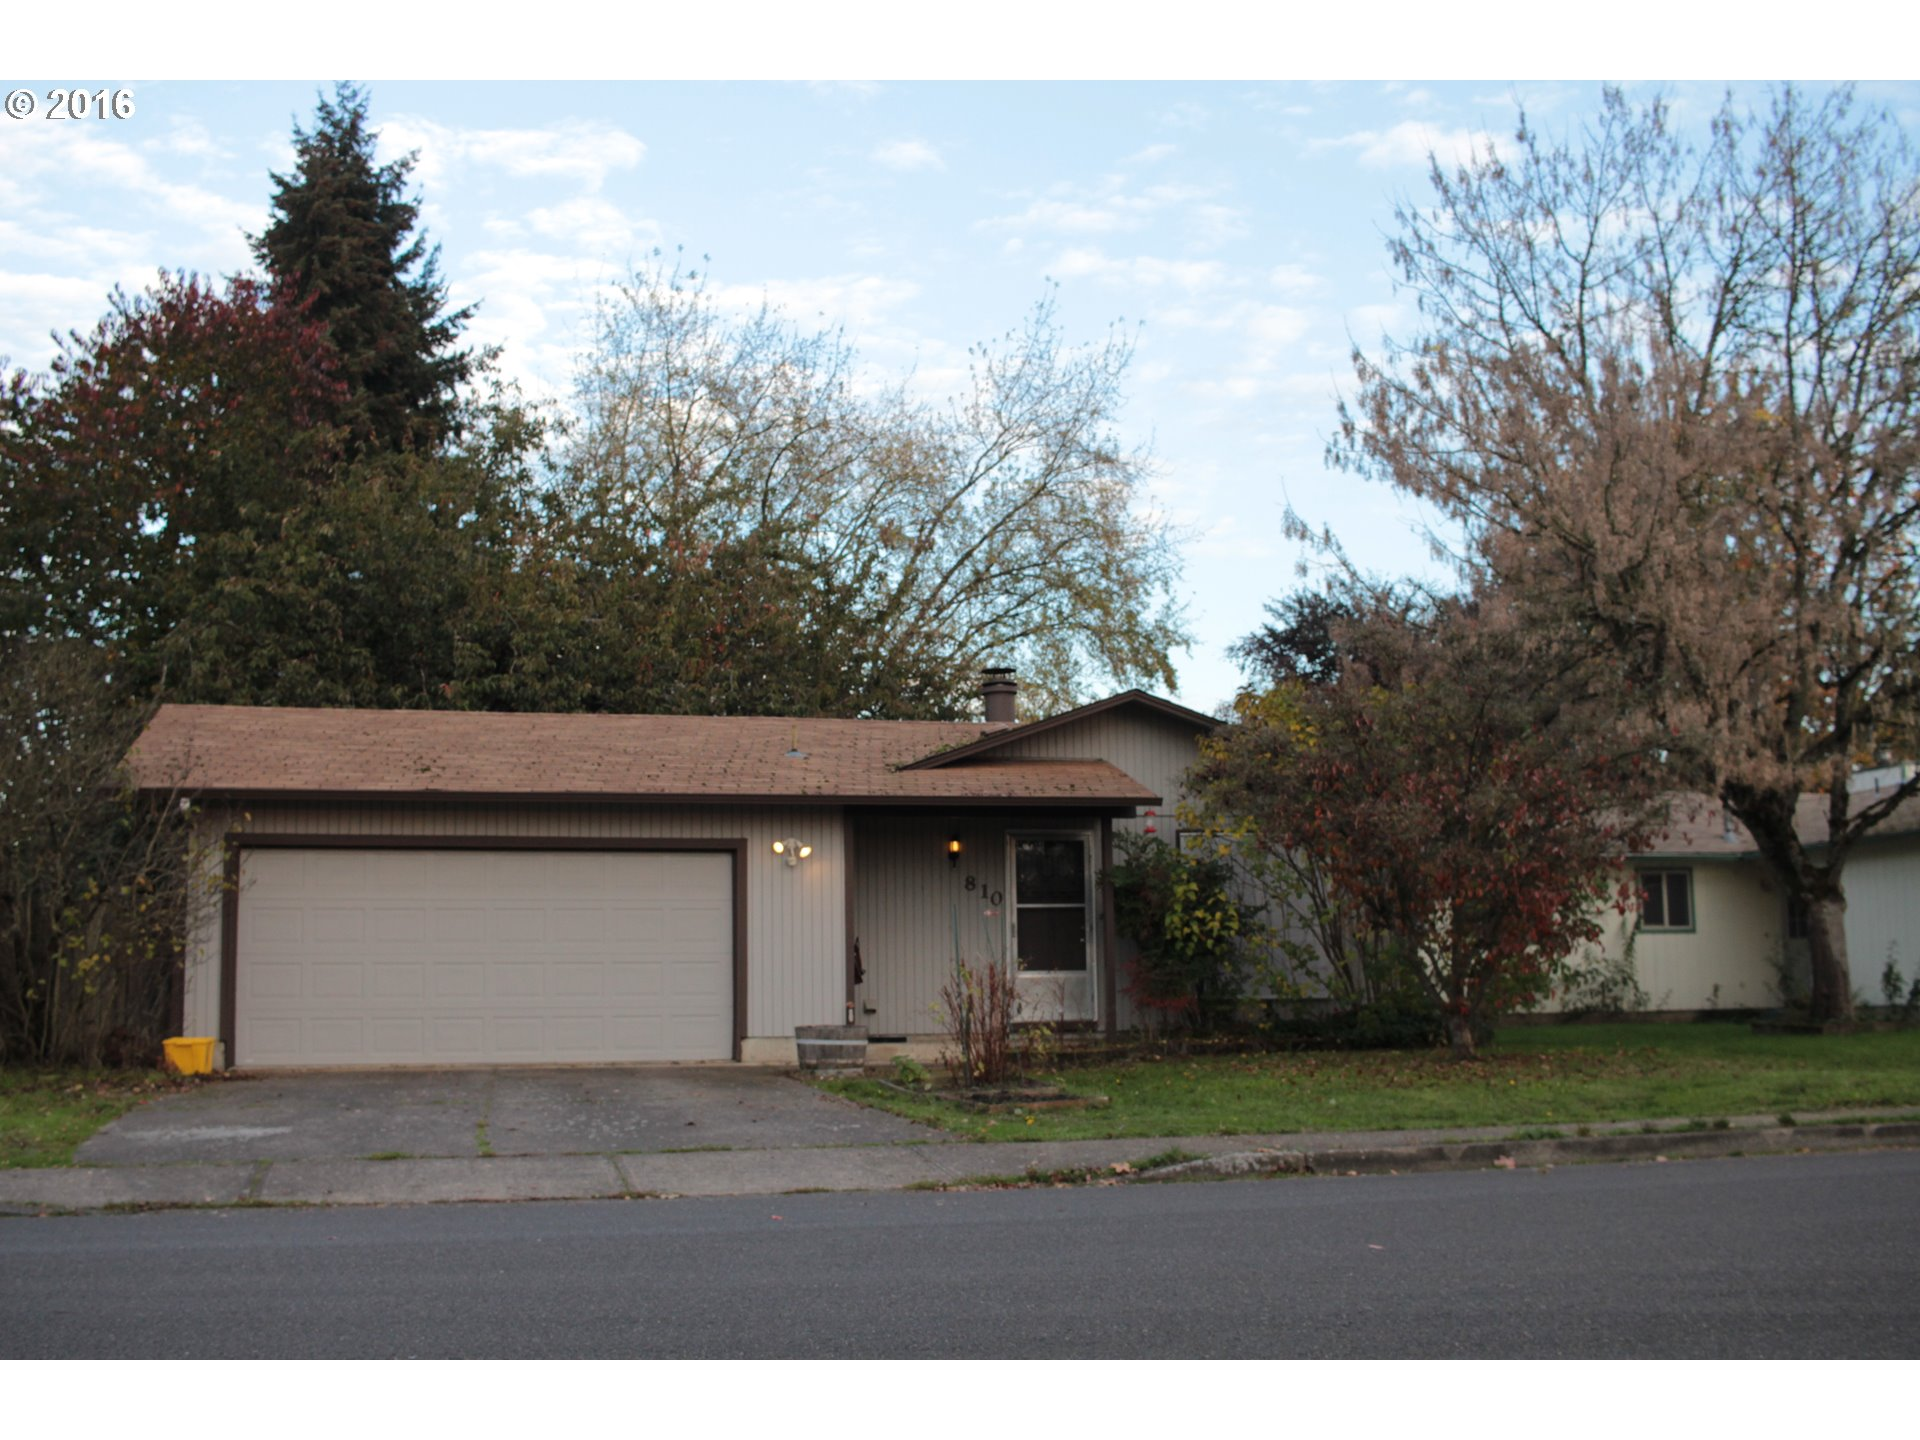 810 BIRCH ST, Junction City, OR 97448